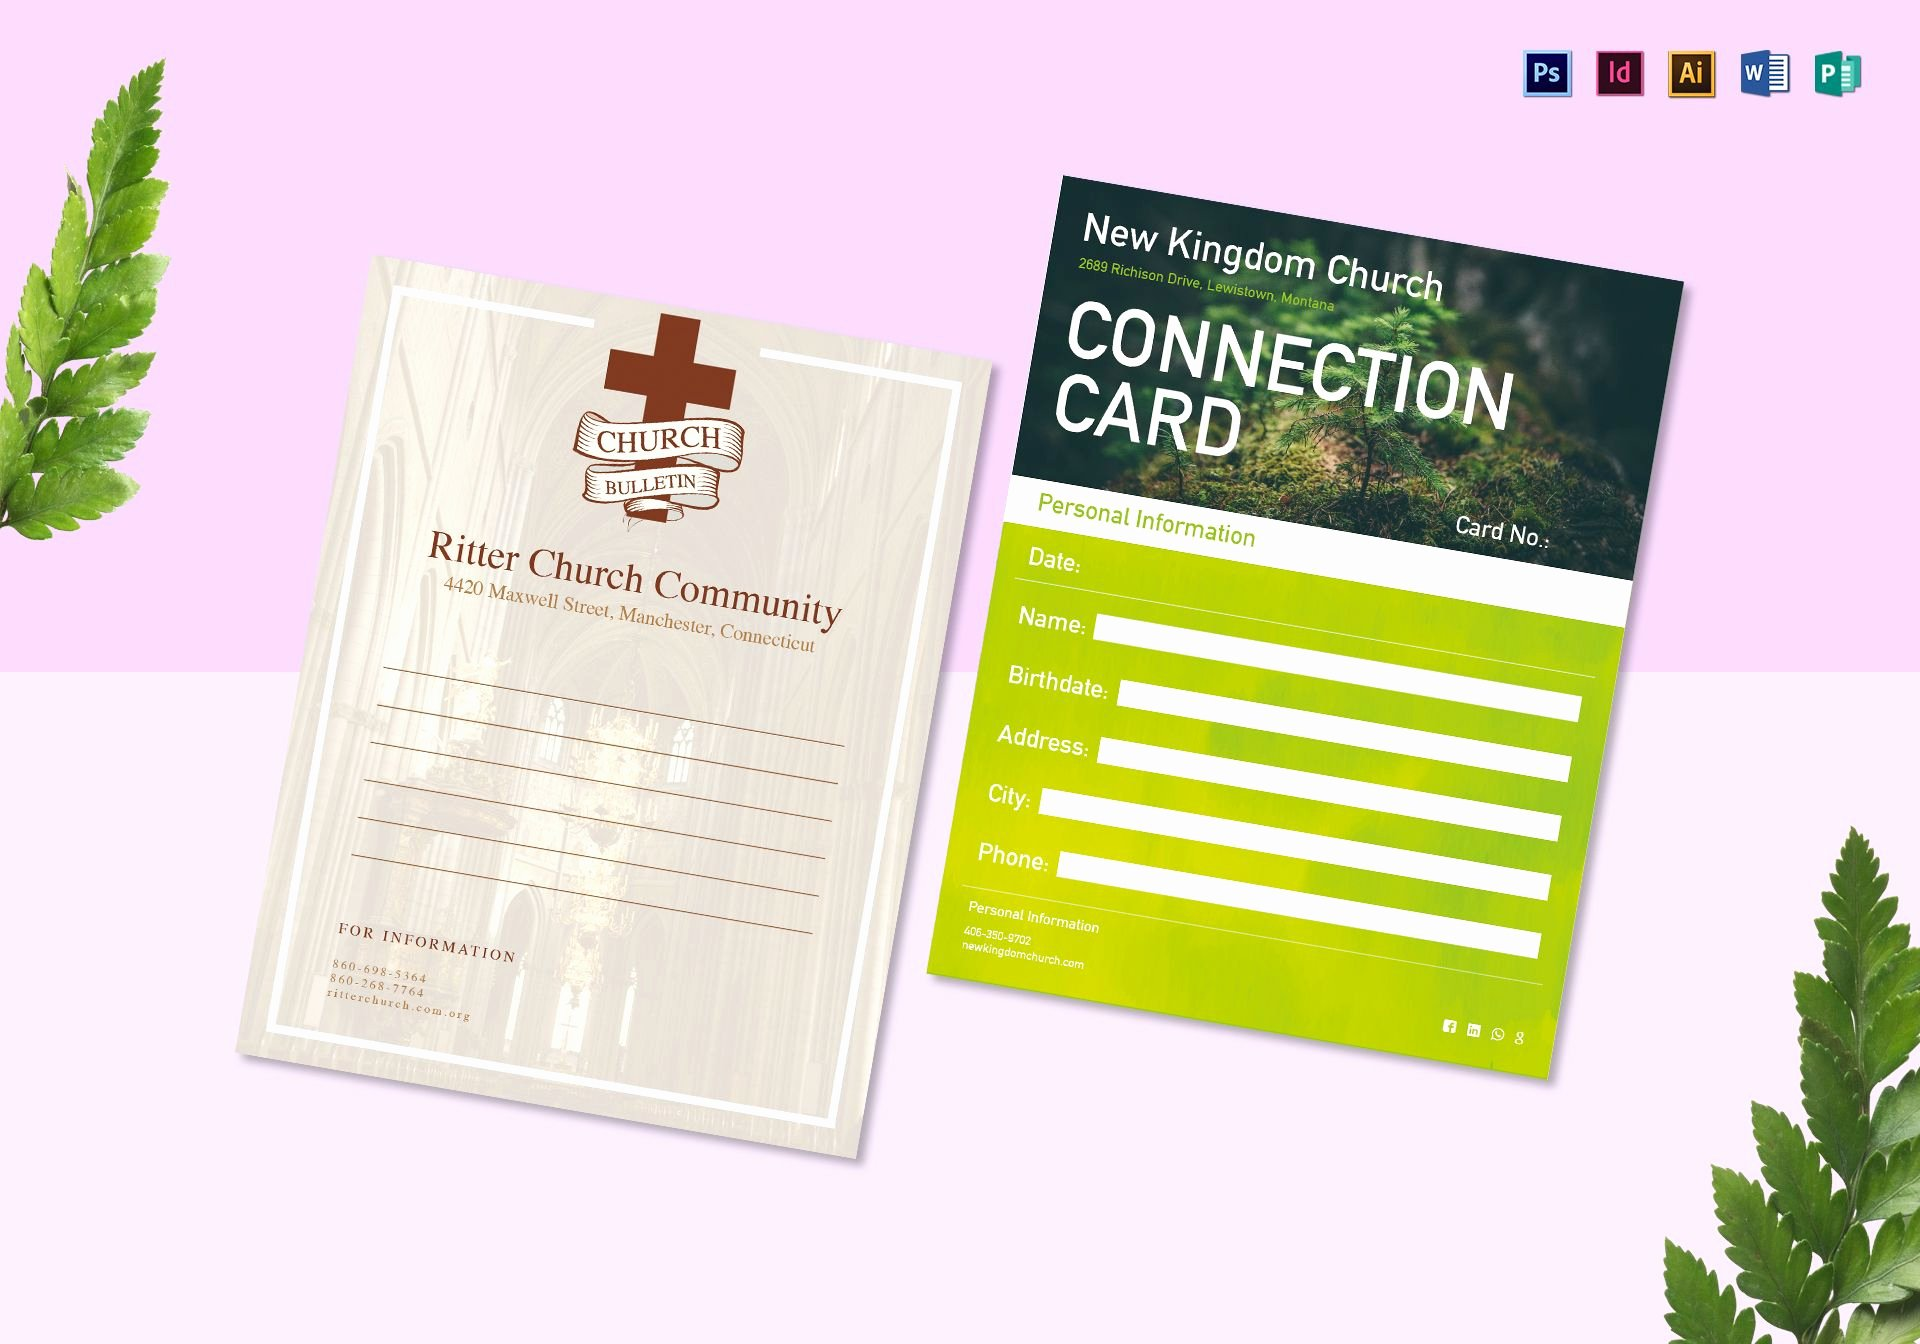 Church Bulletin Templates Microsoft Publisher Elegant Church Bulletin and Connect Card Flyer Design Template In